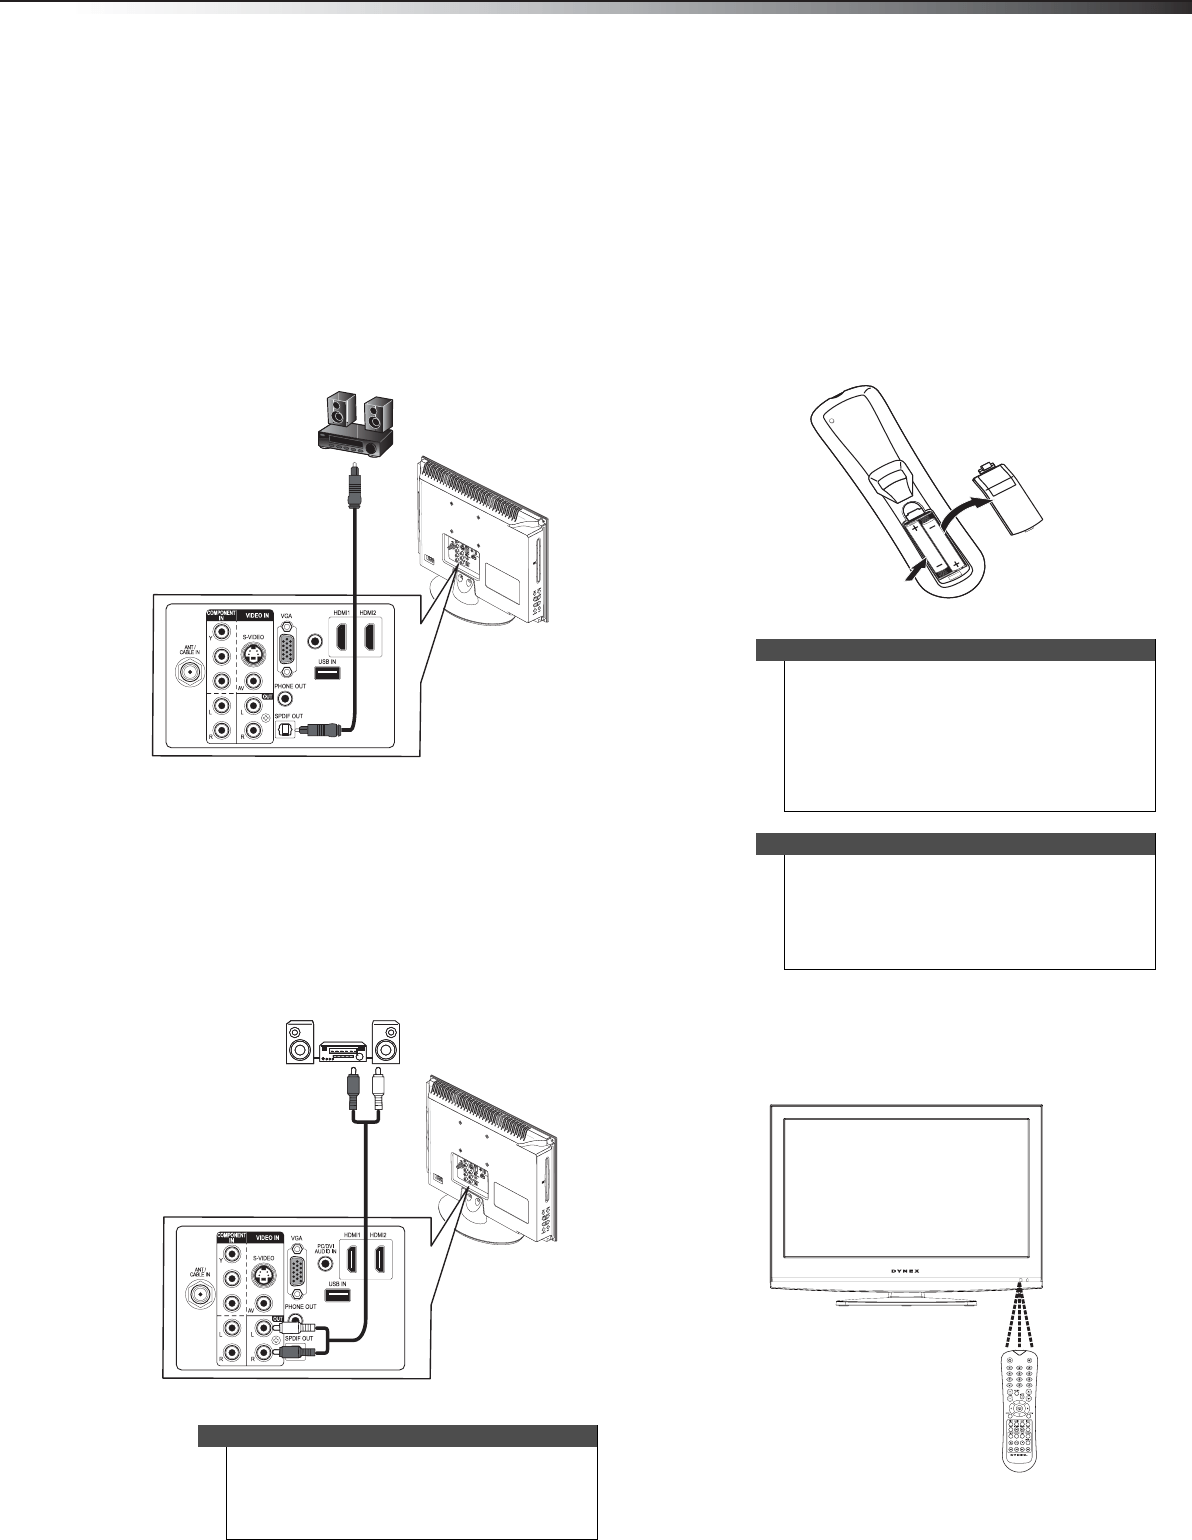 Page 19 of Dynex Flat Panel Television DX-19LD150A11 User